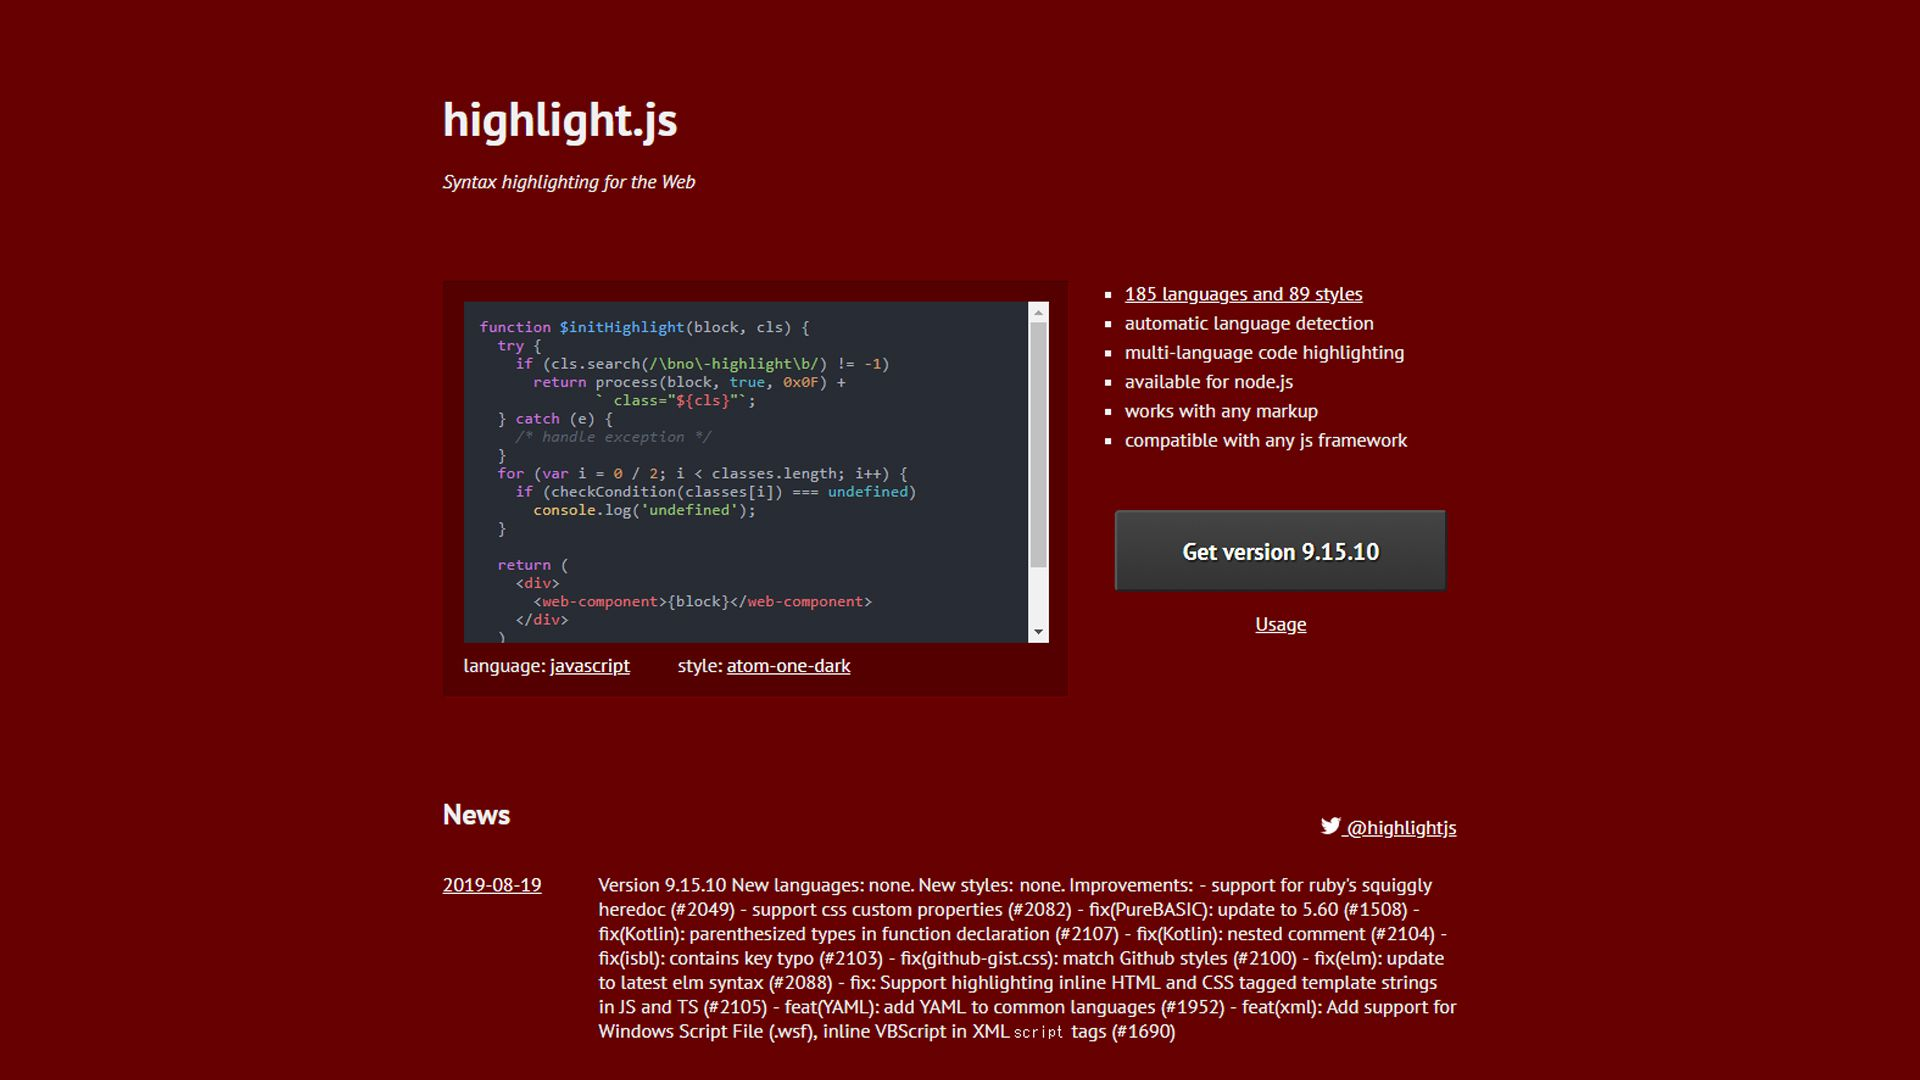 WordPressでhighlight.jsを使う方法。